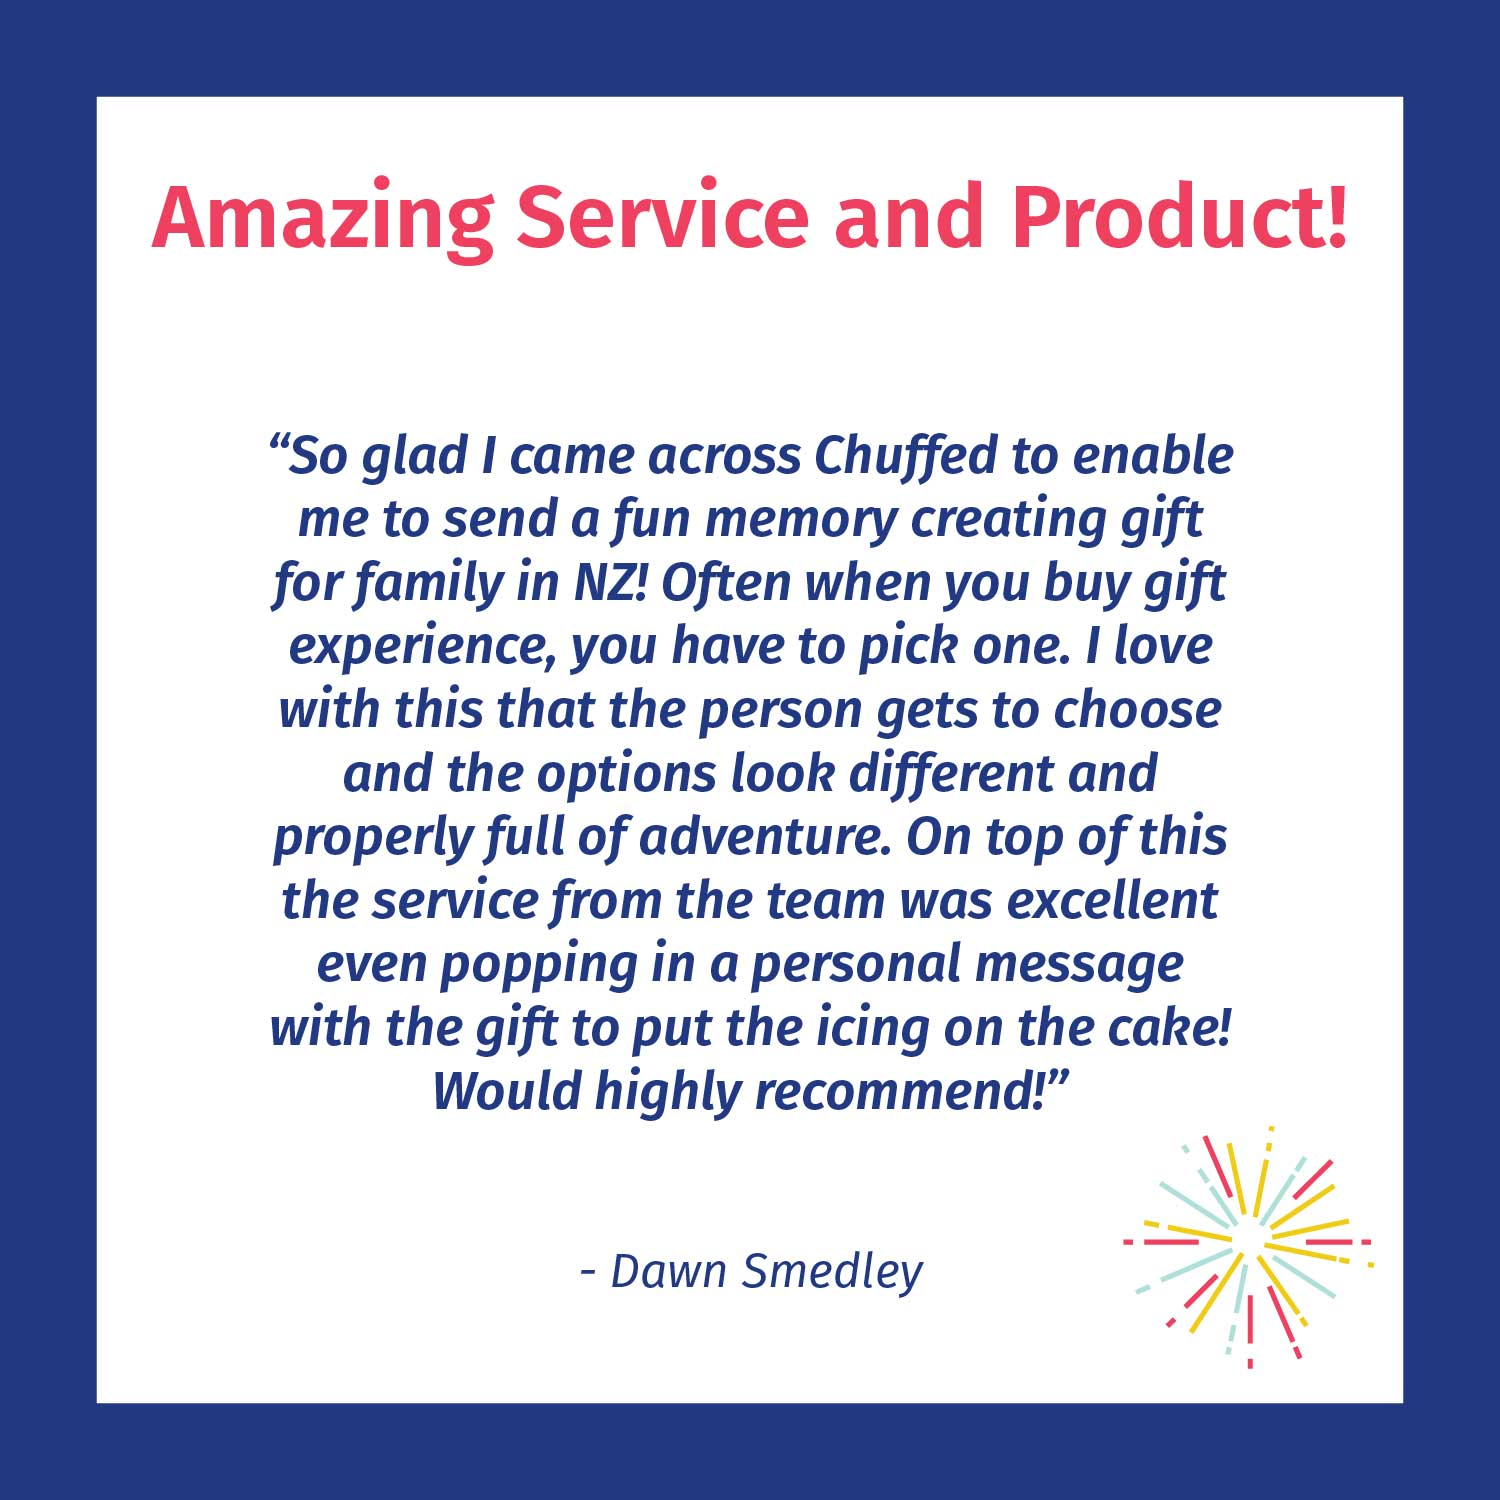 Amazing service and product - Chuffed customer review